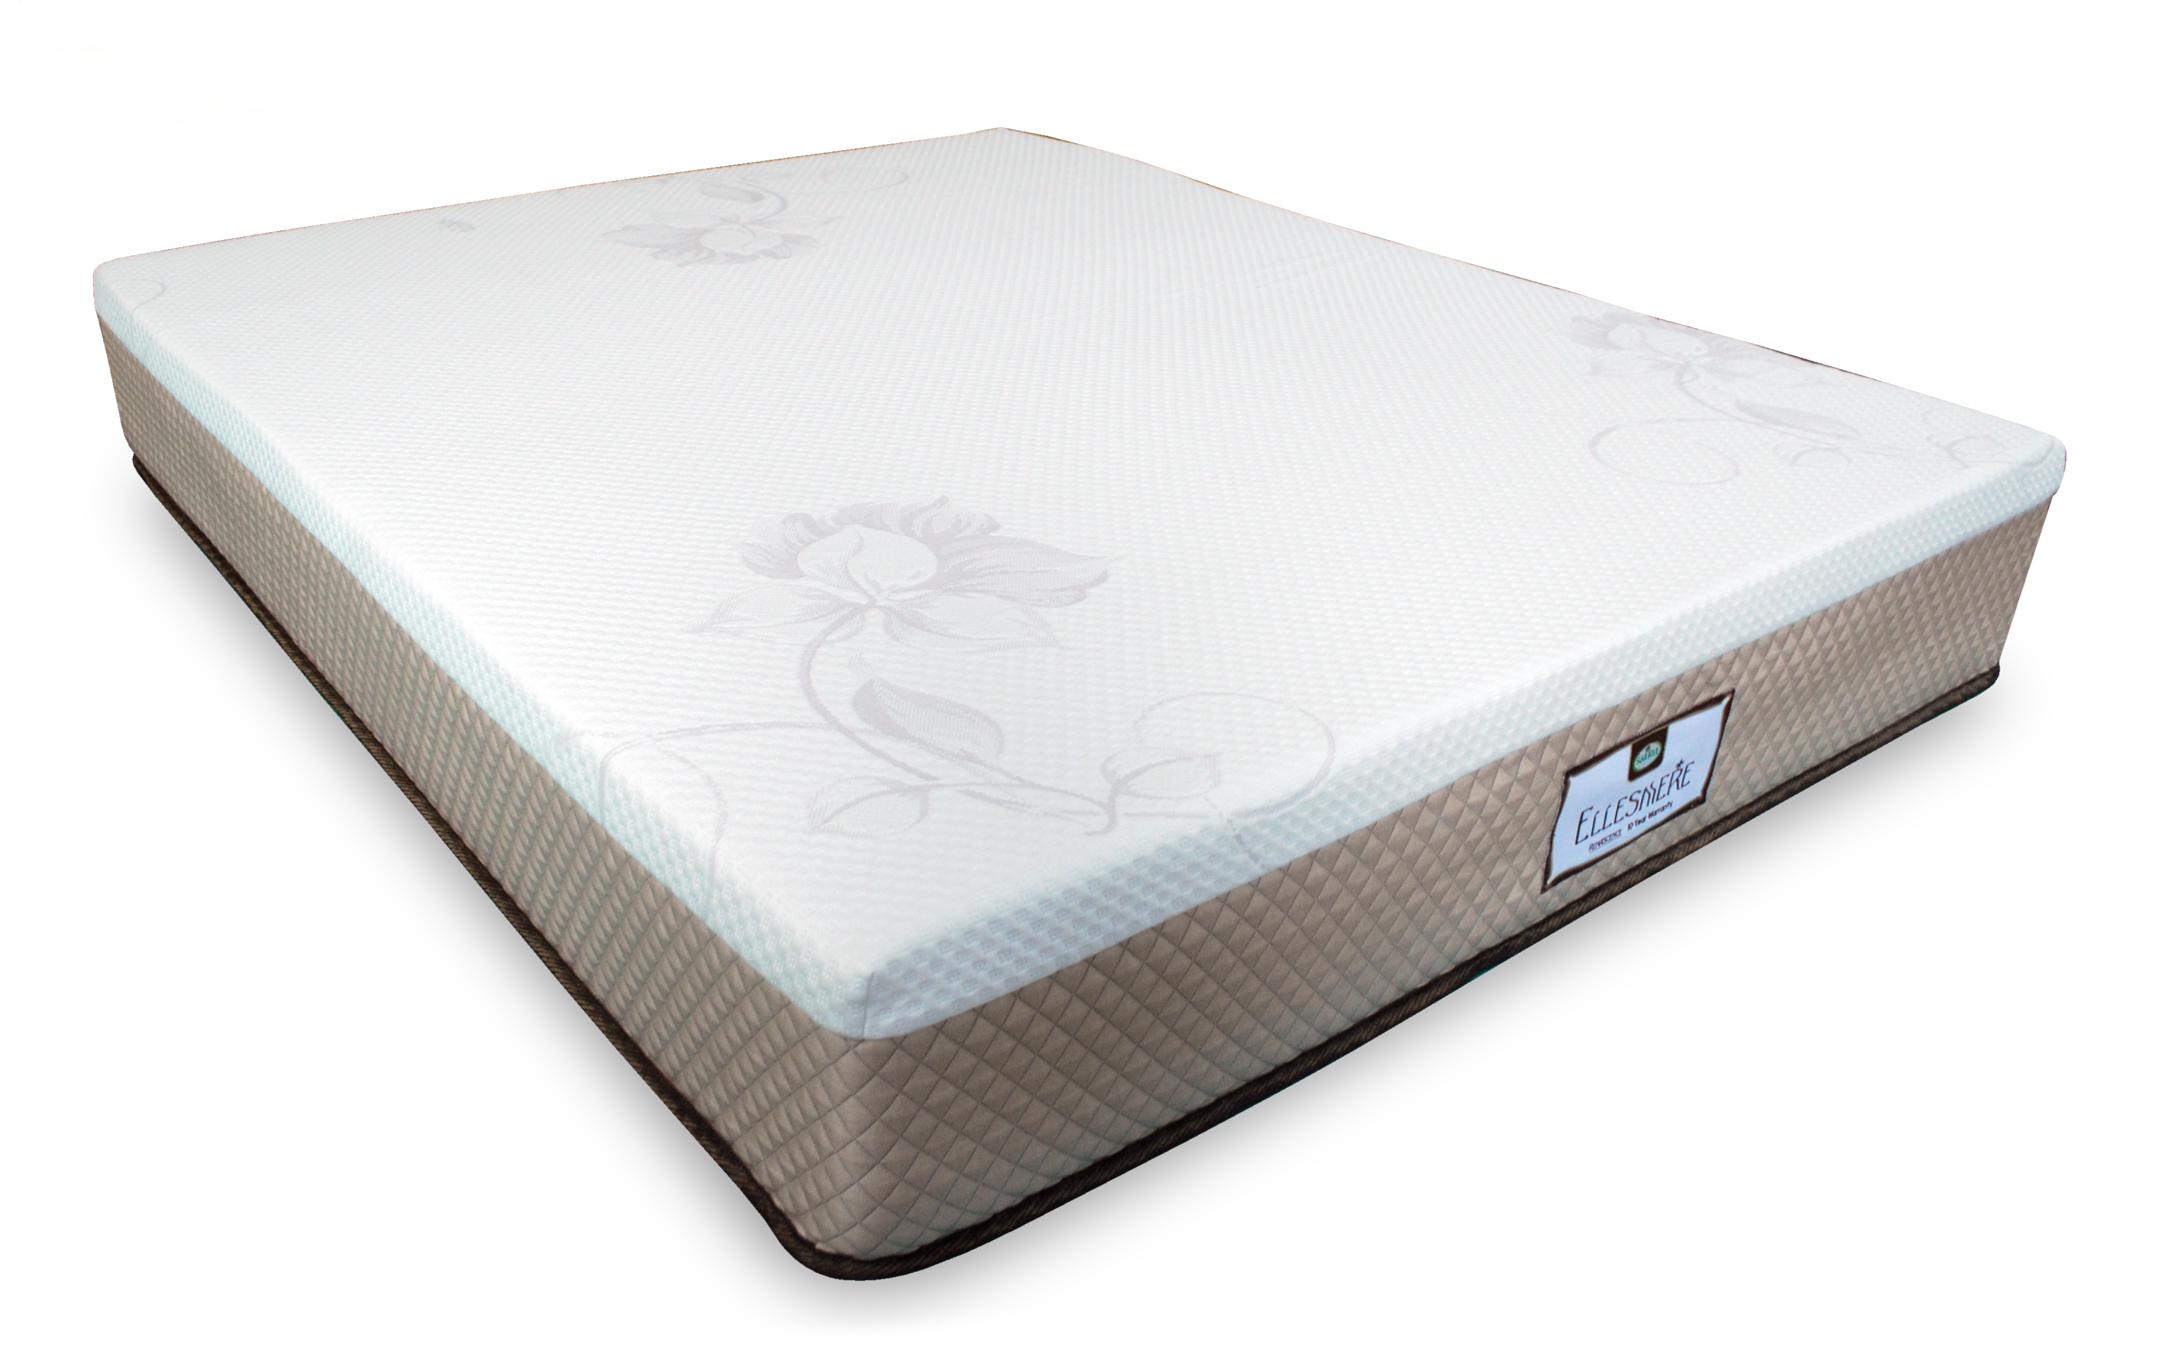 Salem Bed's Ellesmere: The Perfect Choice for Mature Sleepers